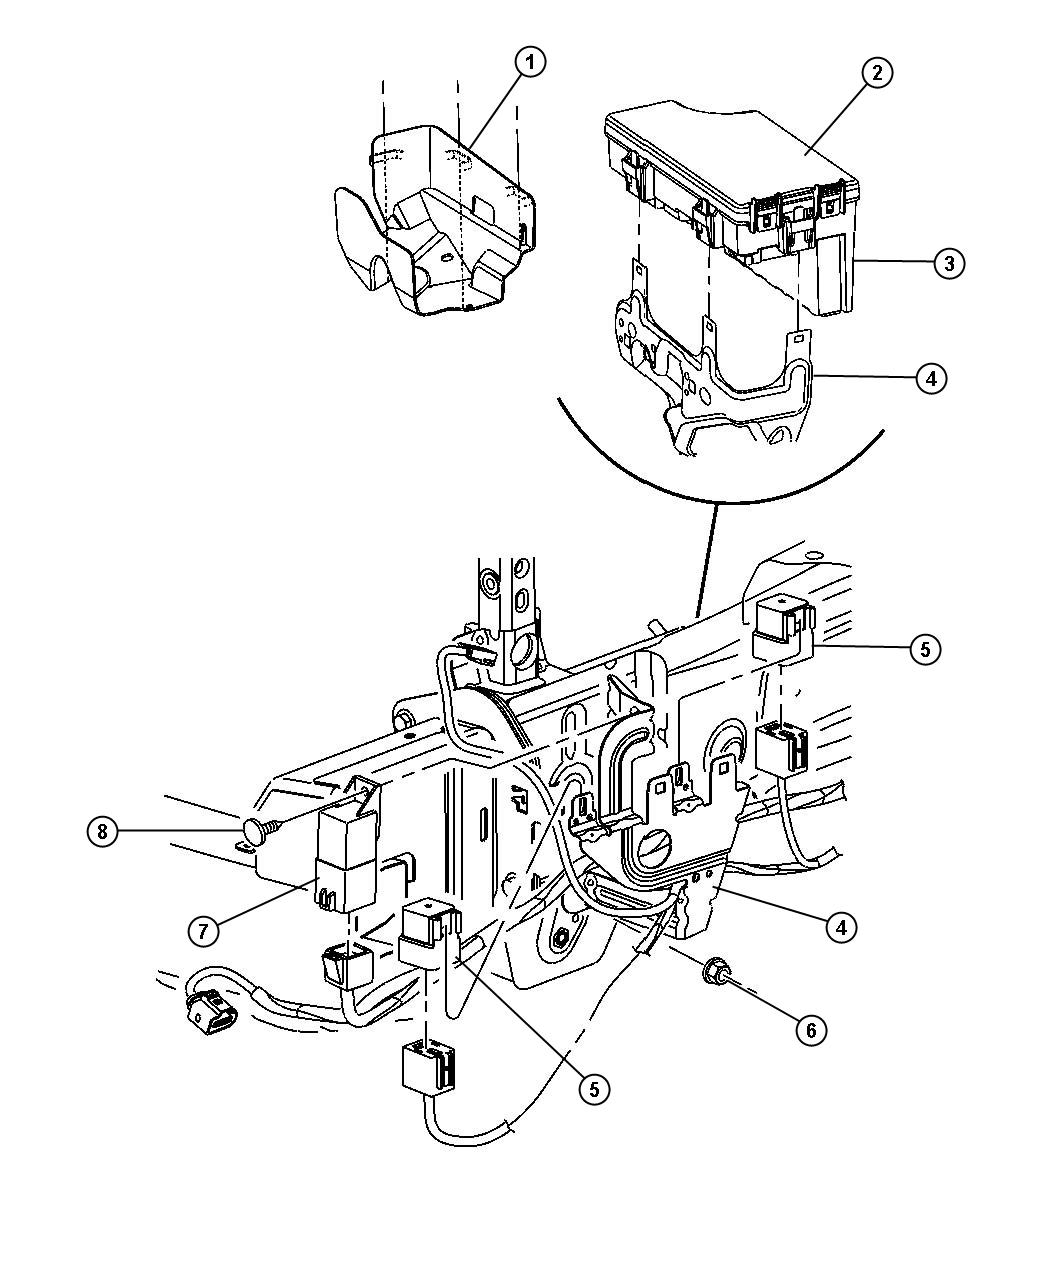 chevy factory radio wiring diagram chevy discover your wiring jeep patriot transfer case diagram chevy factory radio wiring